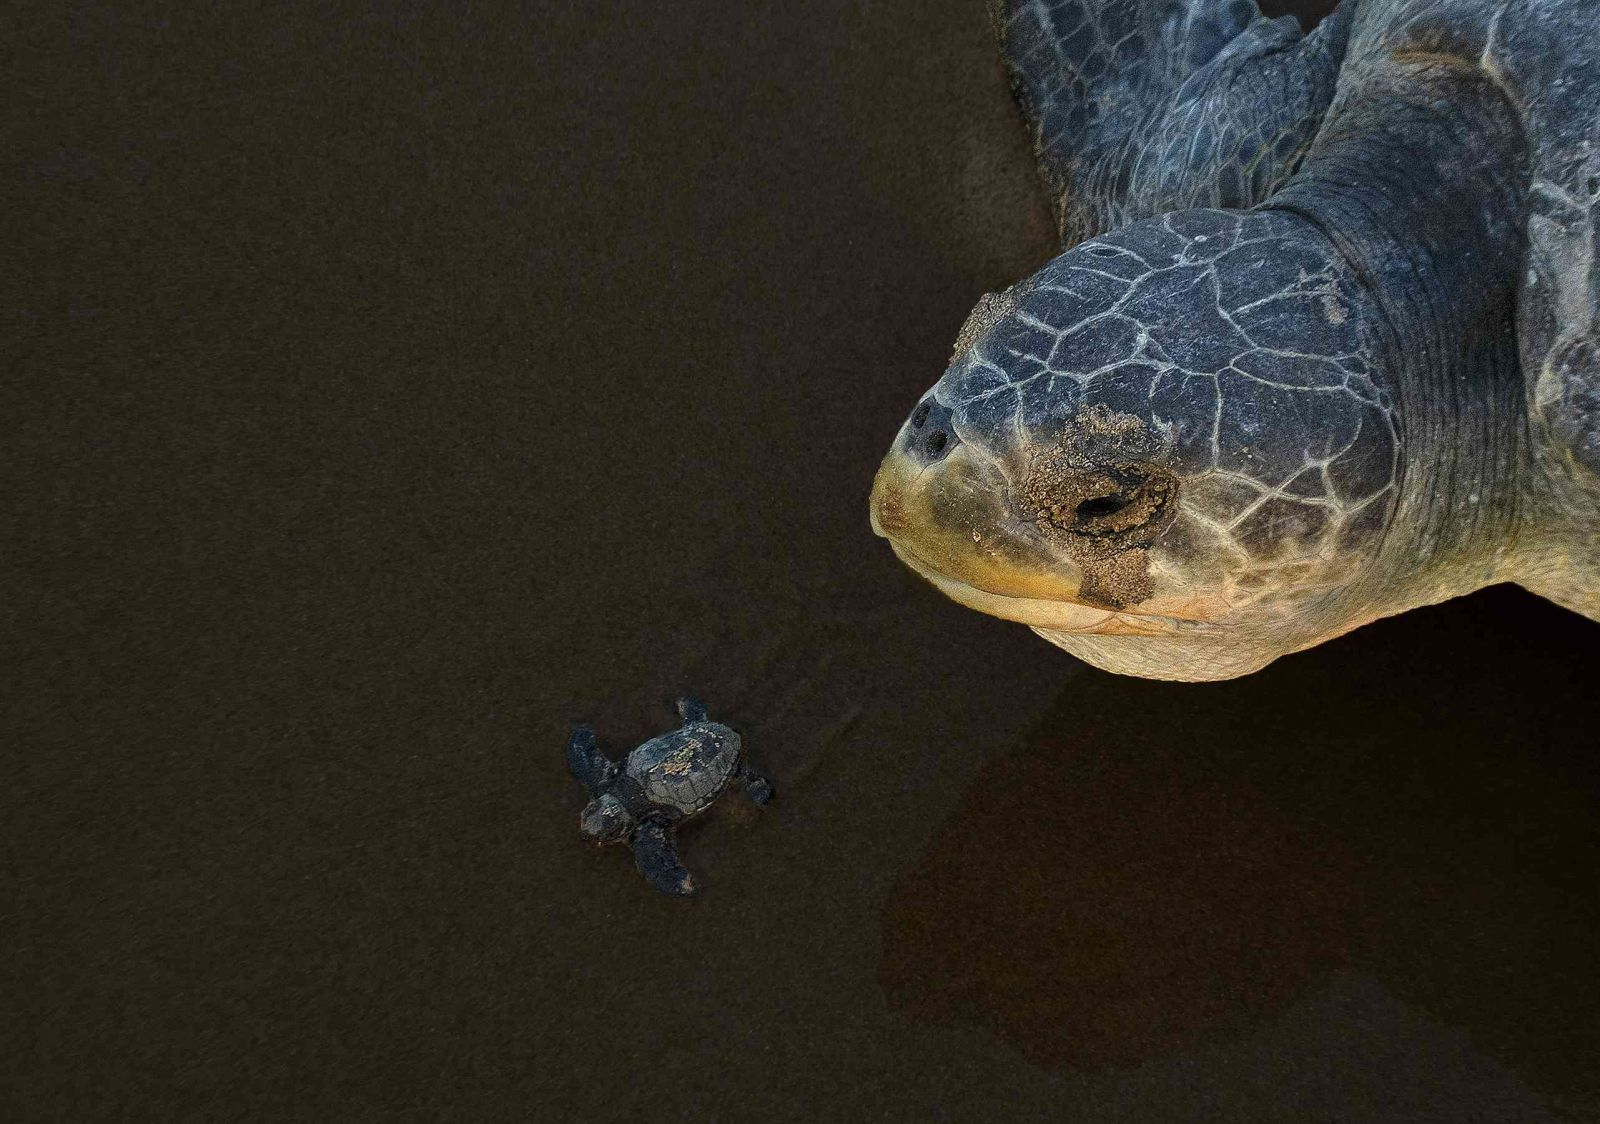 award winning young and old olive turtles photography by arghya adhikary